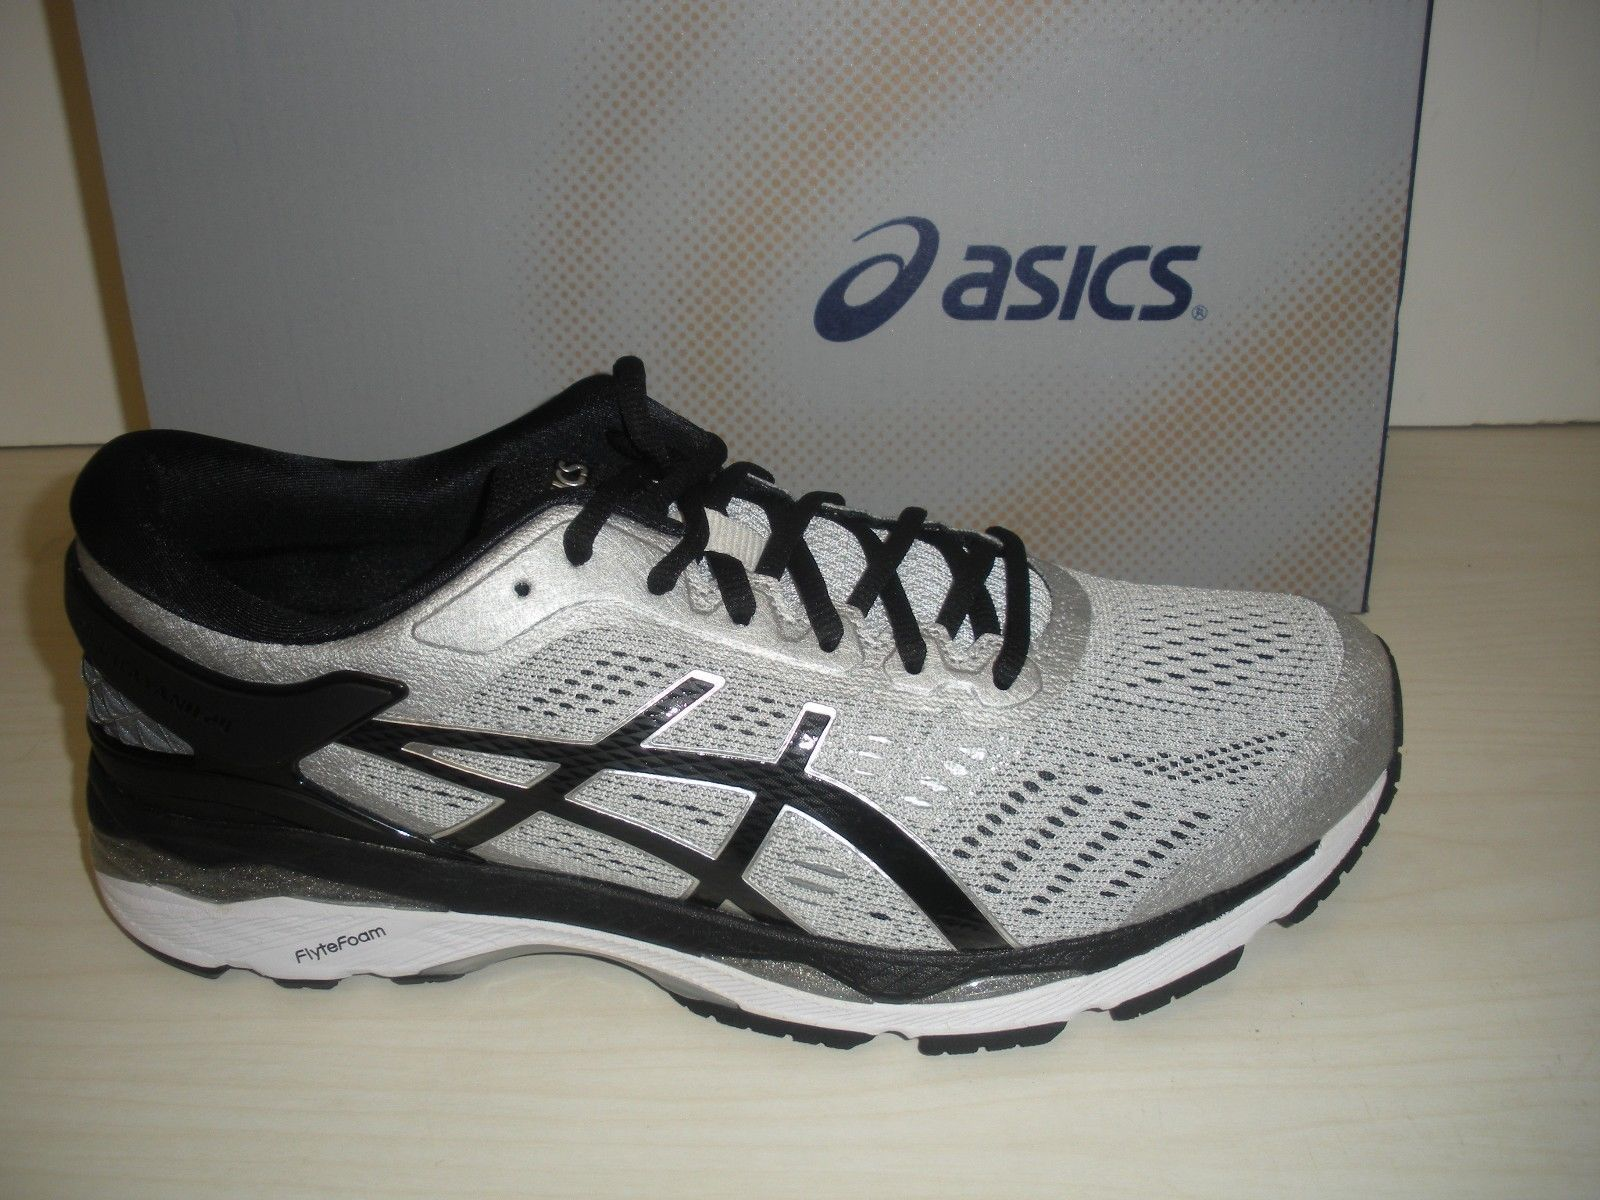 0e5f7e366ca ASICS MENS GEL-KAYANO 24 RUNNING SNEAKERS-SHOES-T749N-9390-SILVER  BLACK  M  GREY